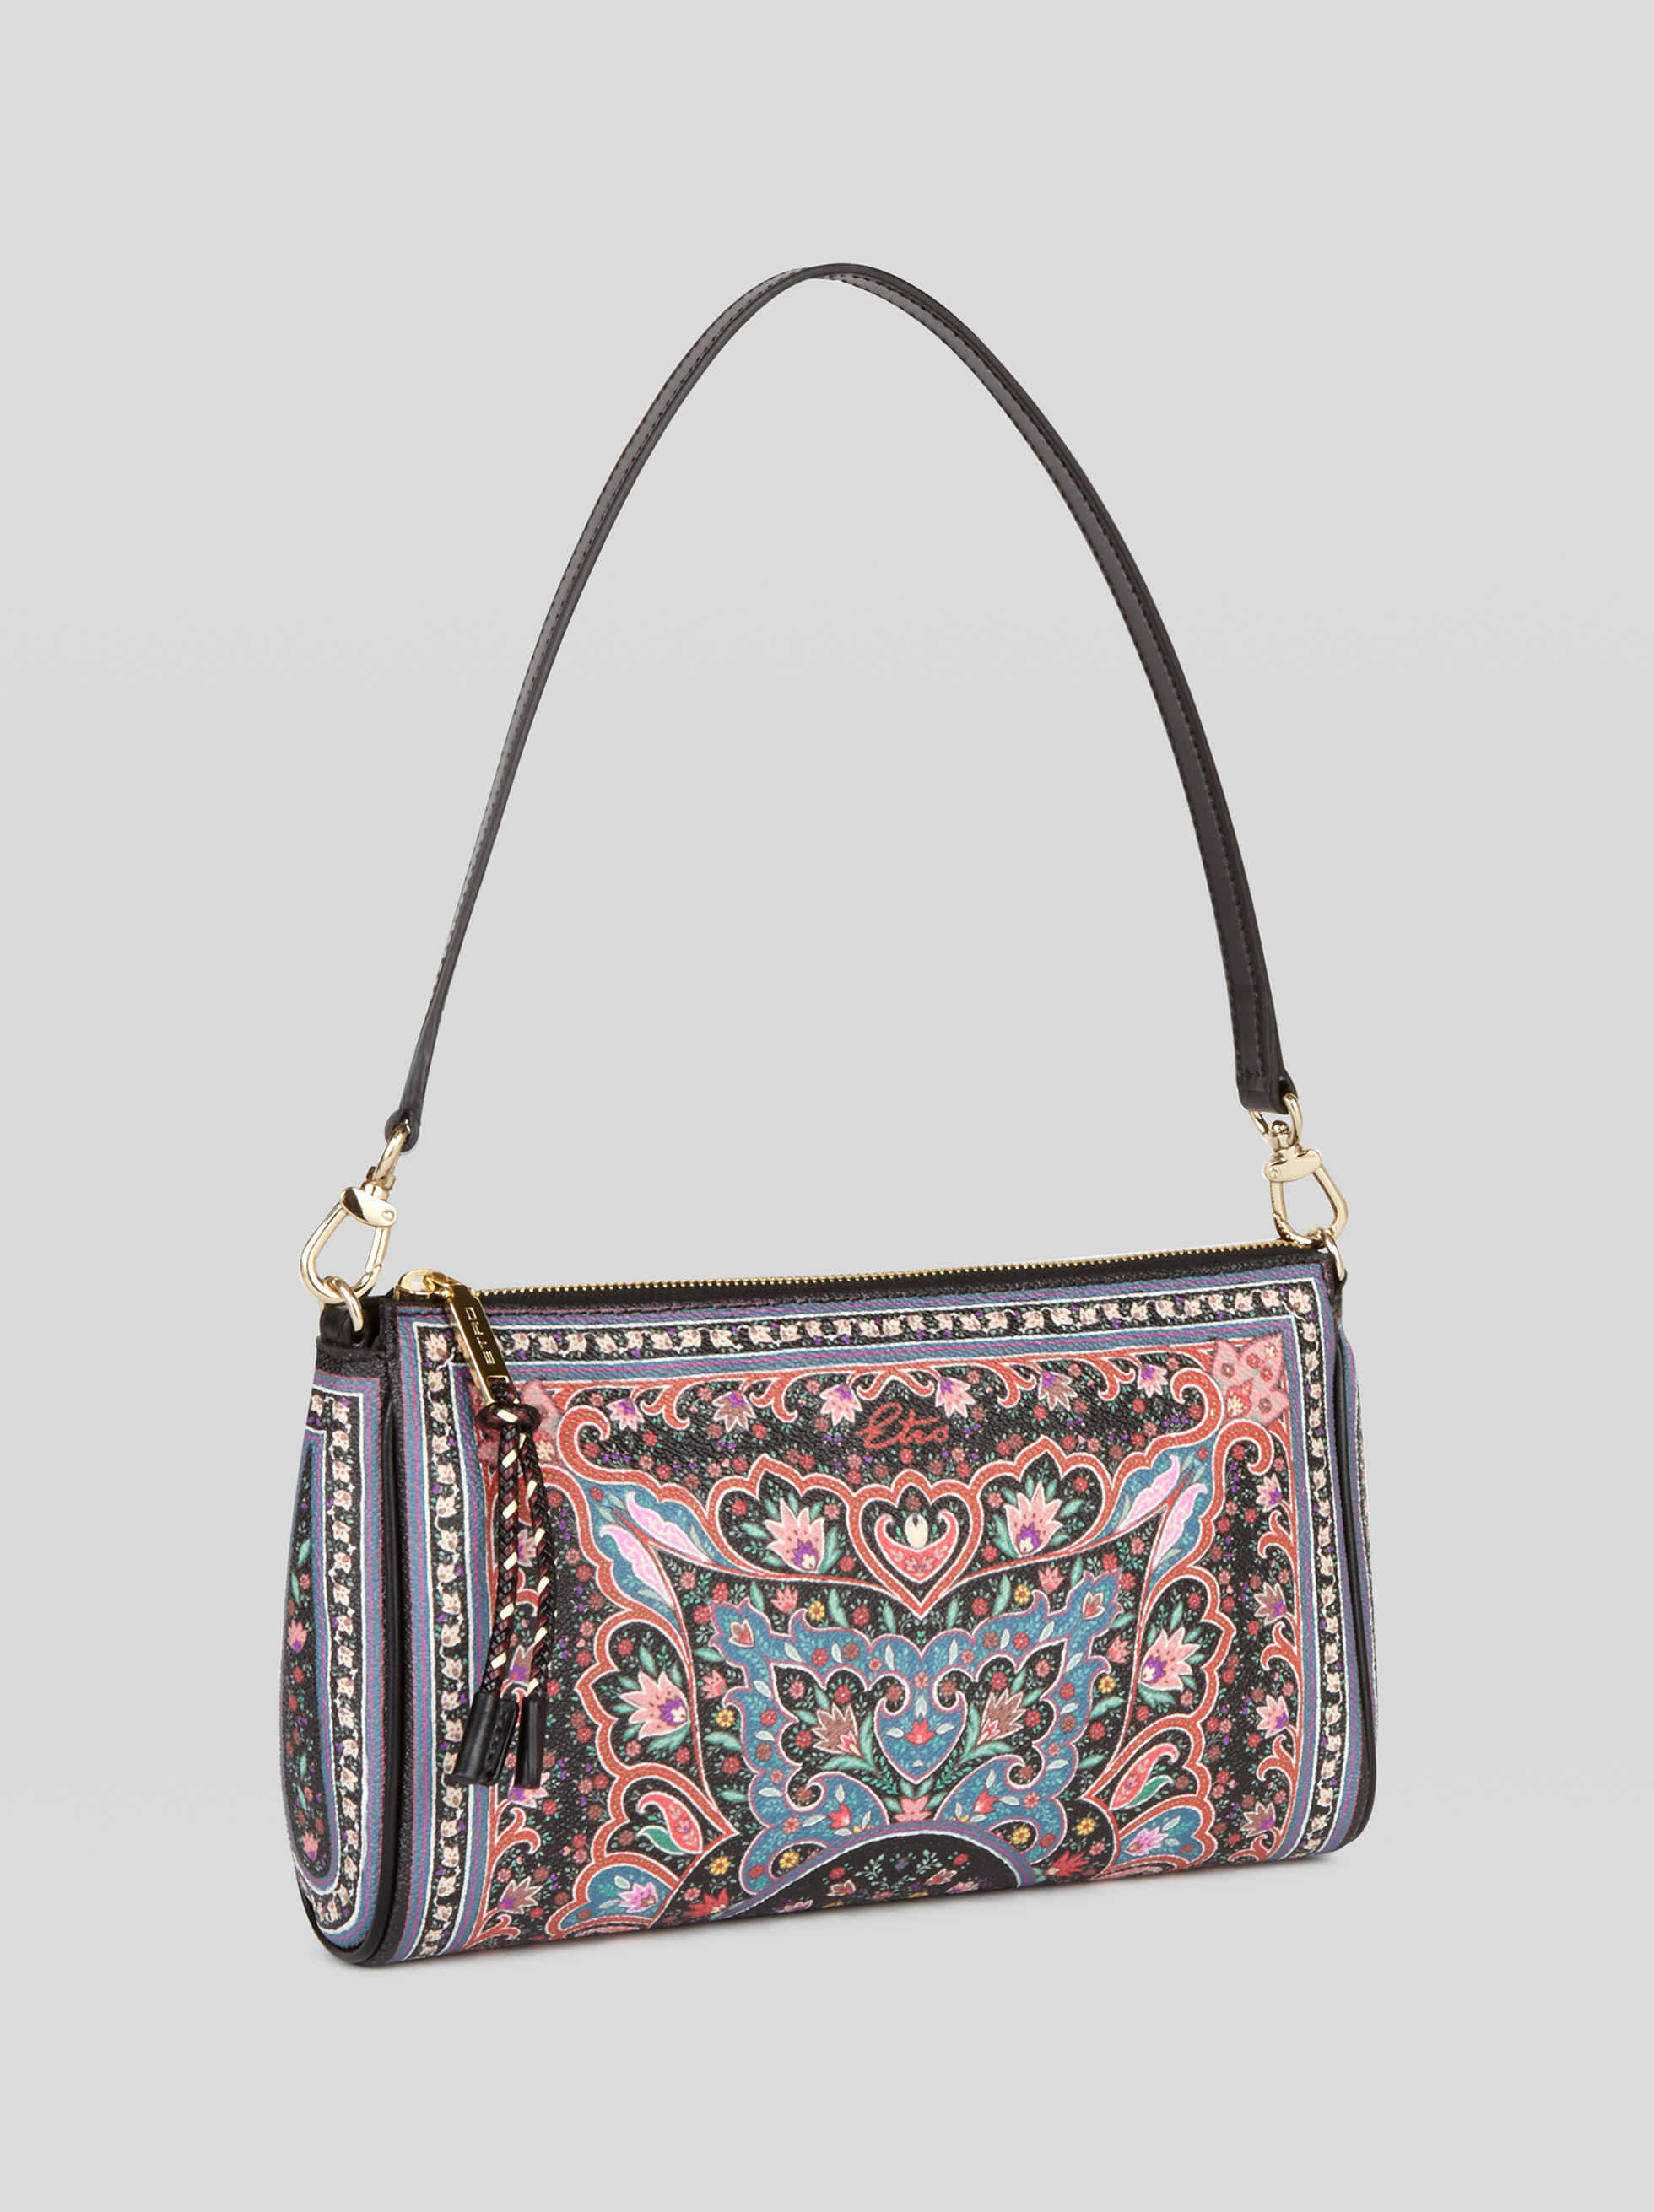 SHOULDER BAG WITH FLORAL PATTERNS